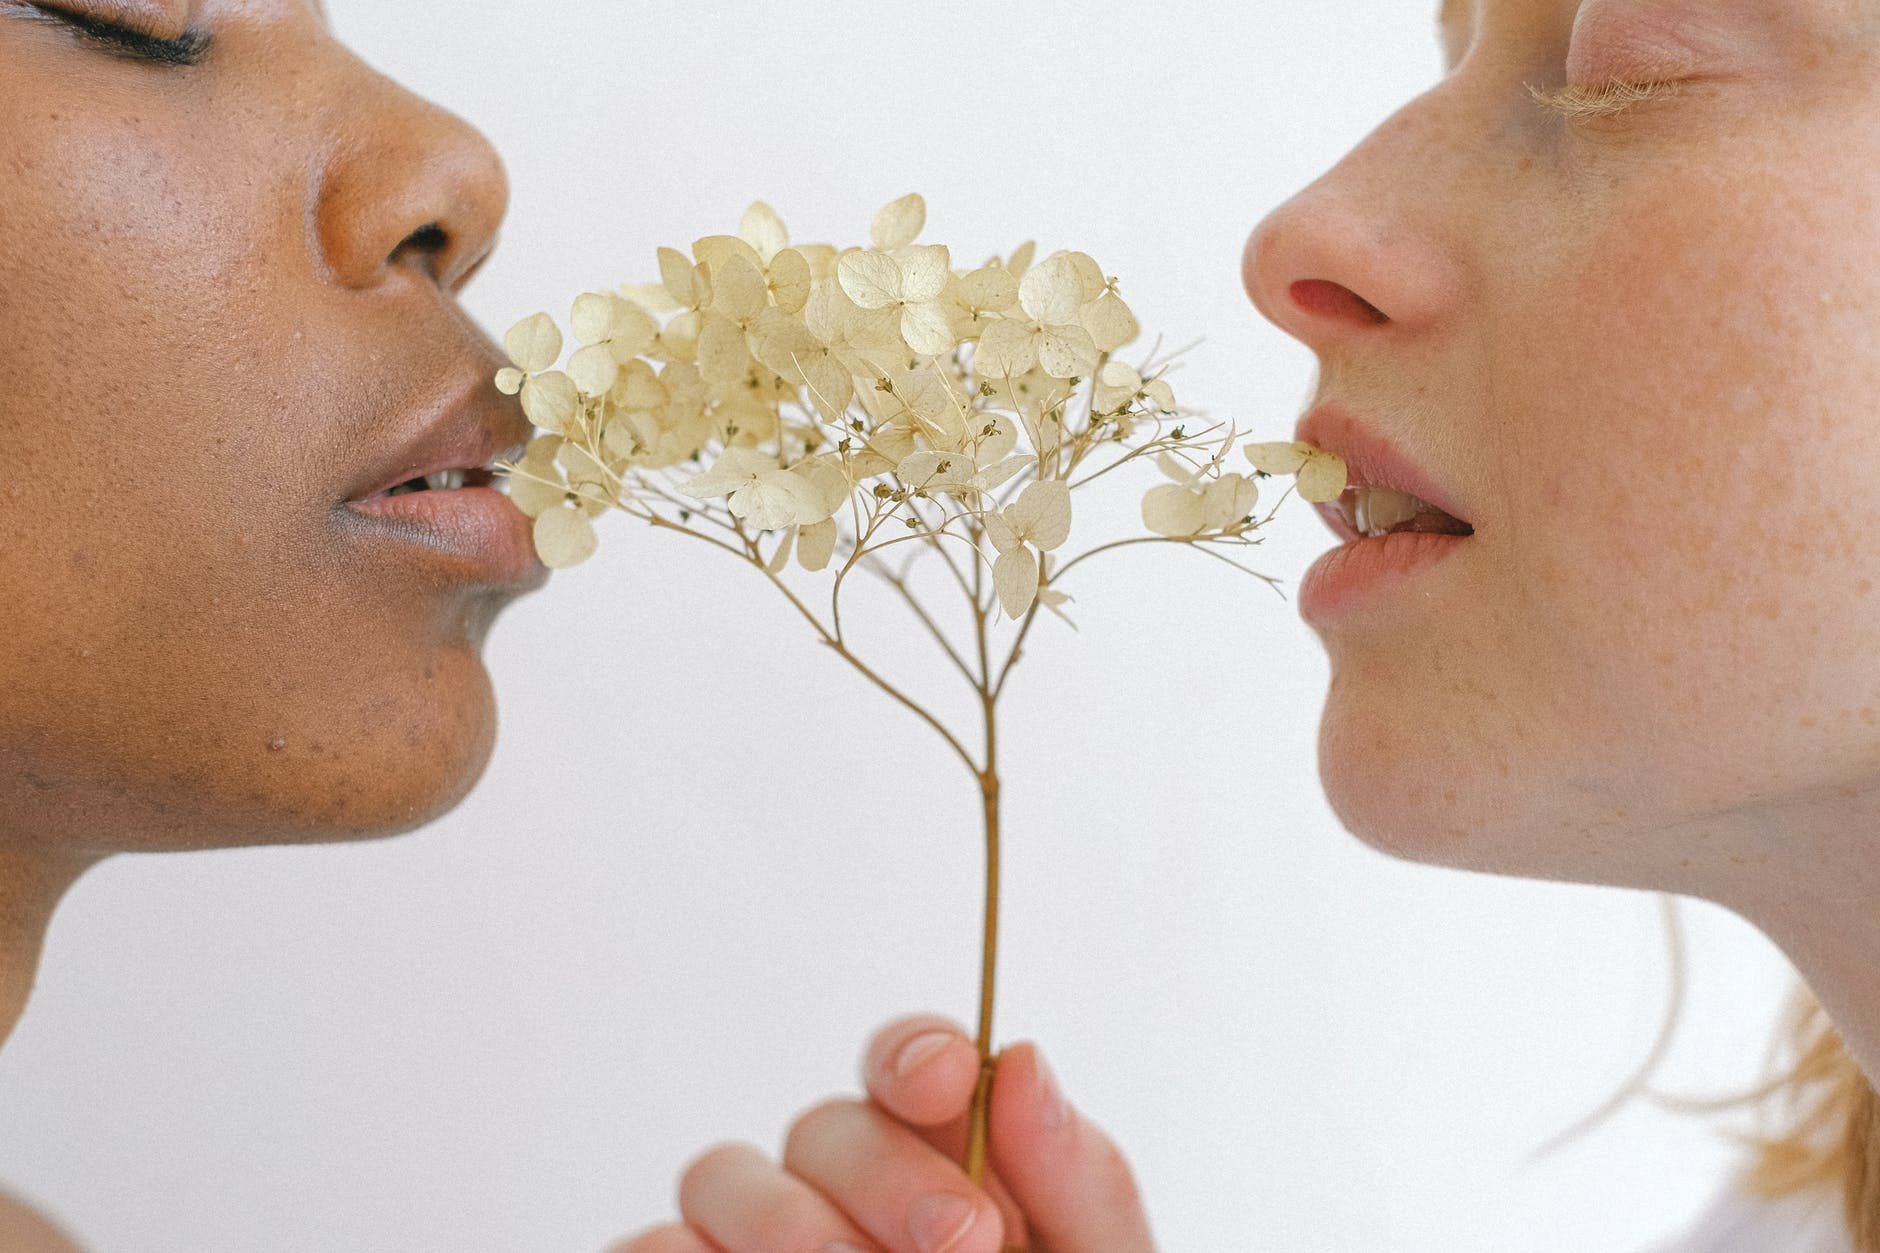 black woman and white woman bite a seed head